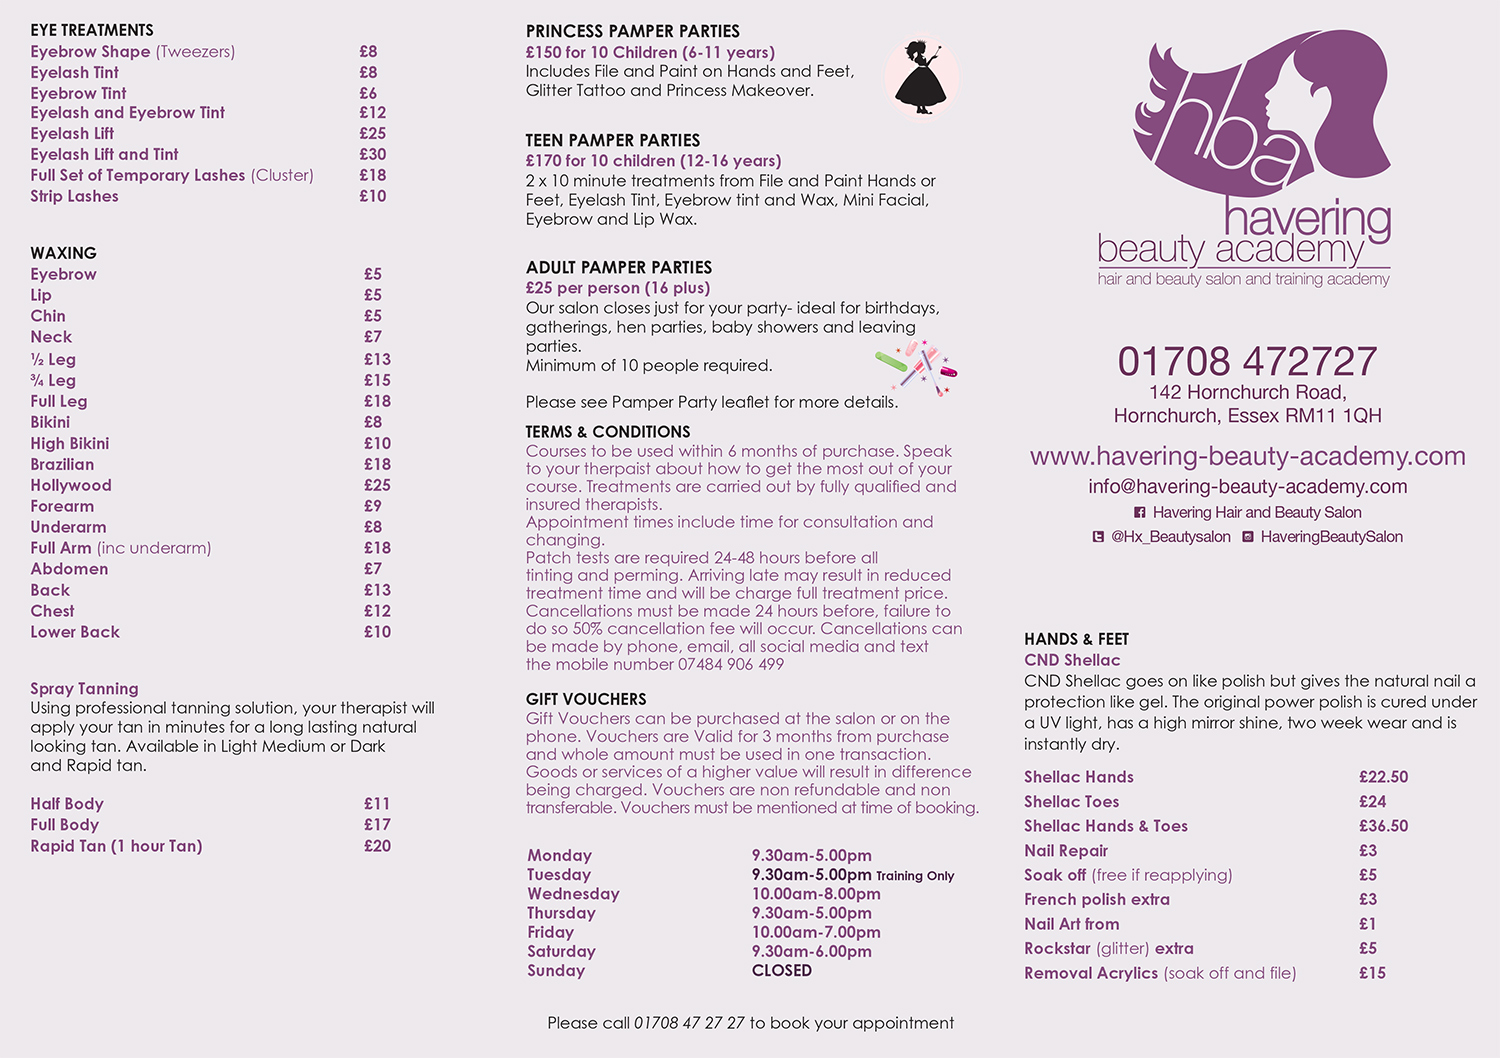 Price list havering beauty academyhavering beauty academy for Academy for salon professionals price list